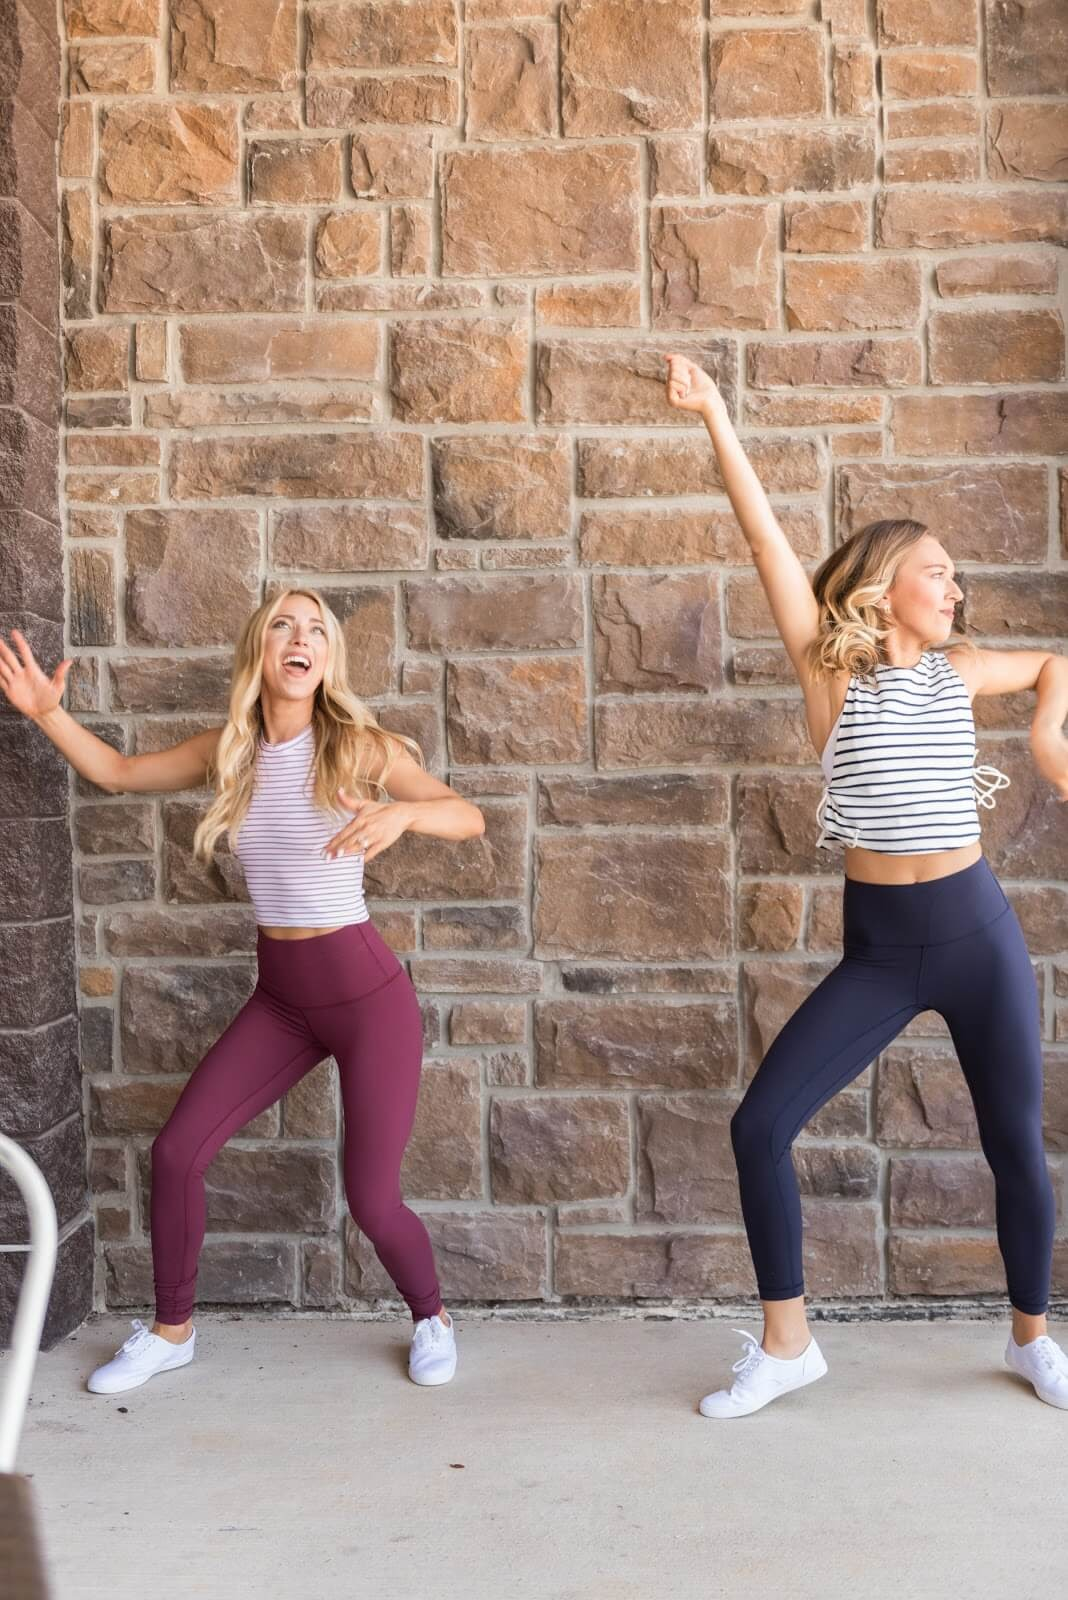 Two women dancing in front of a brick wall.